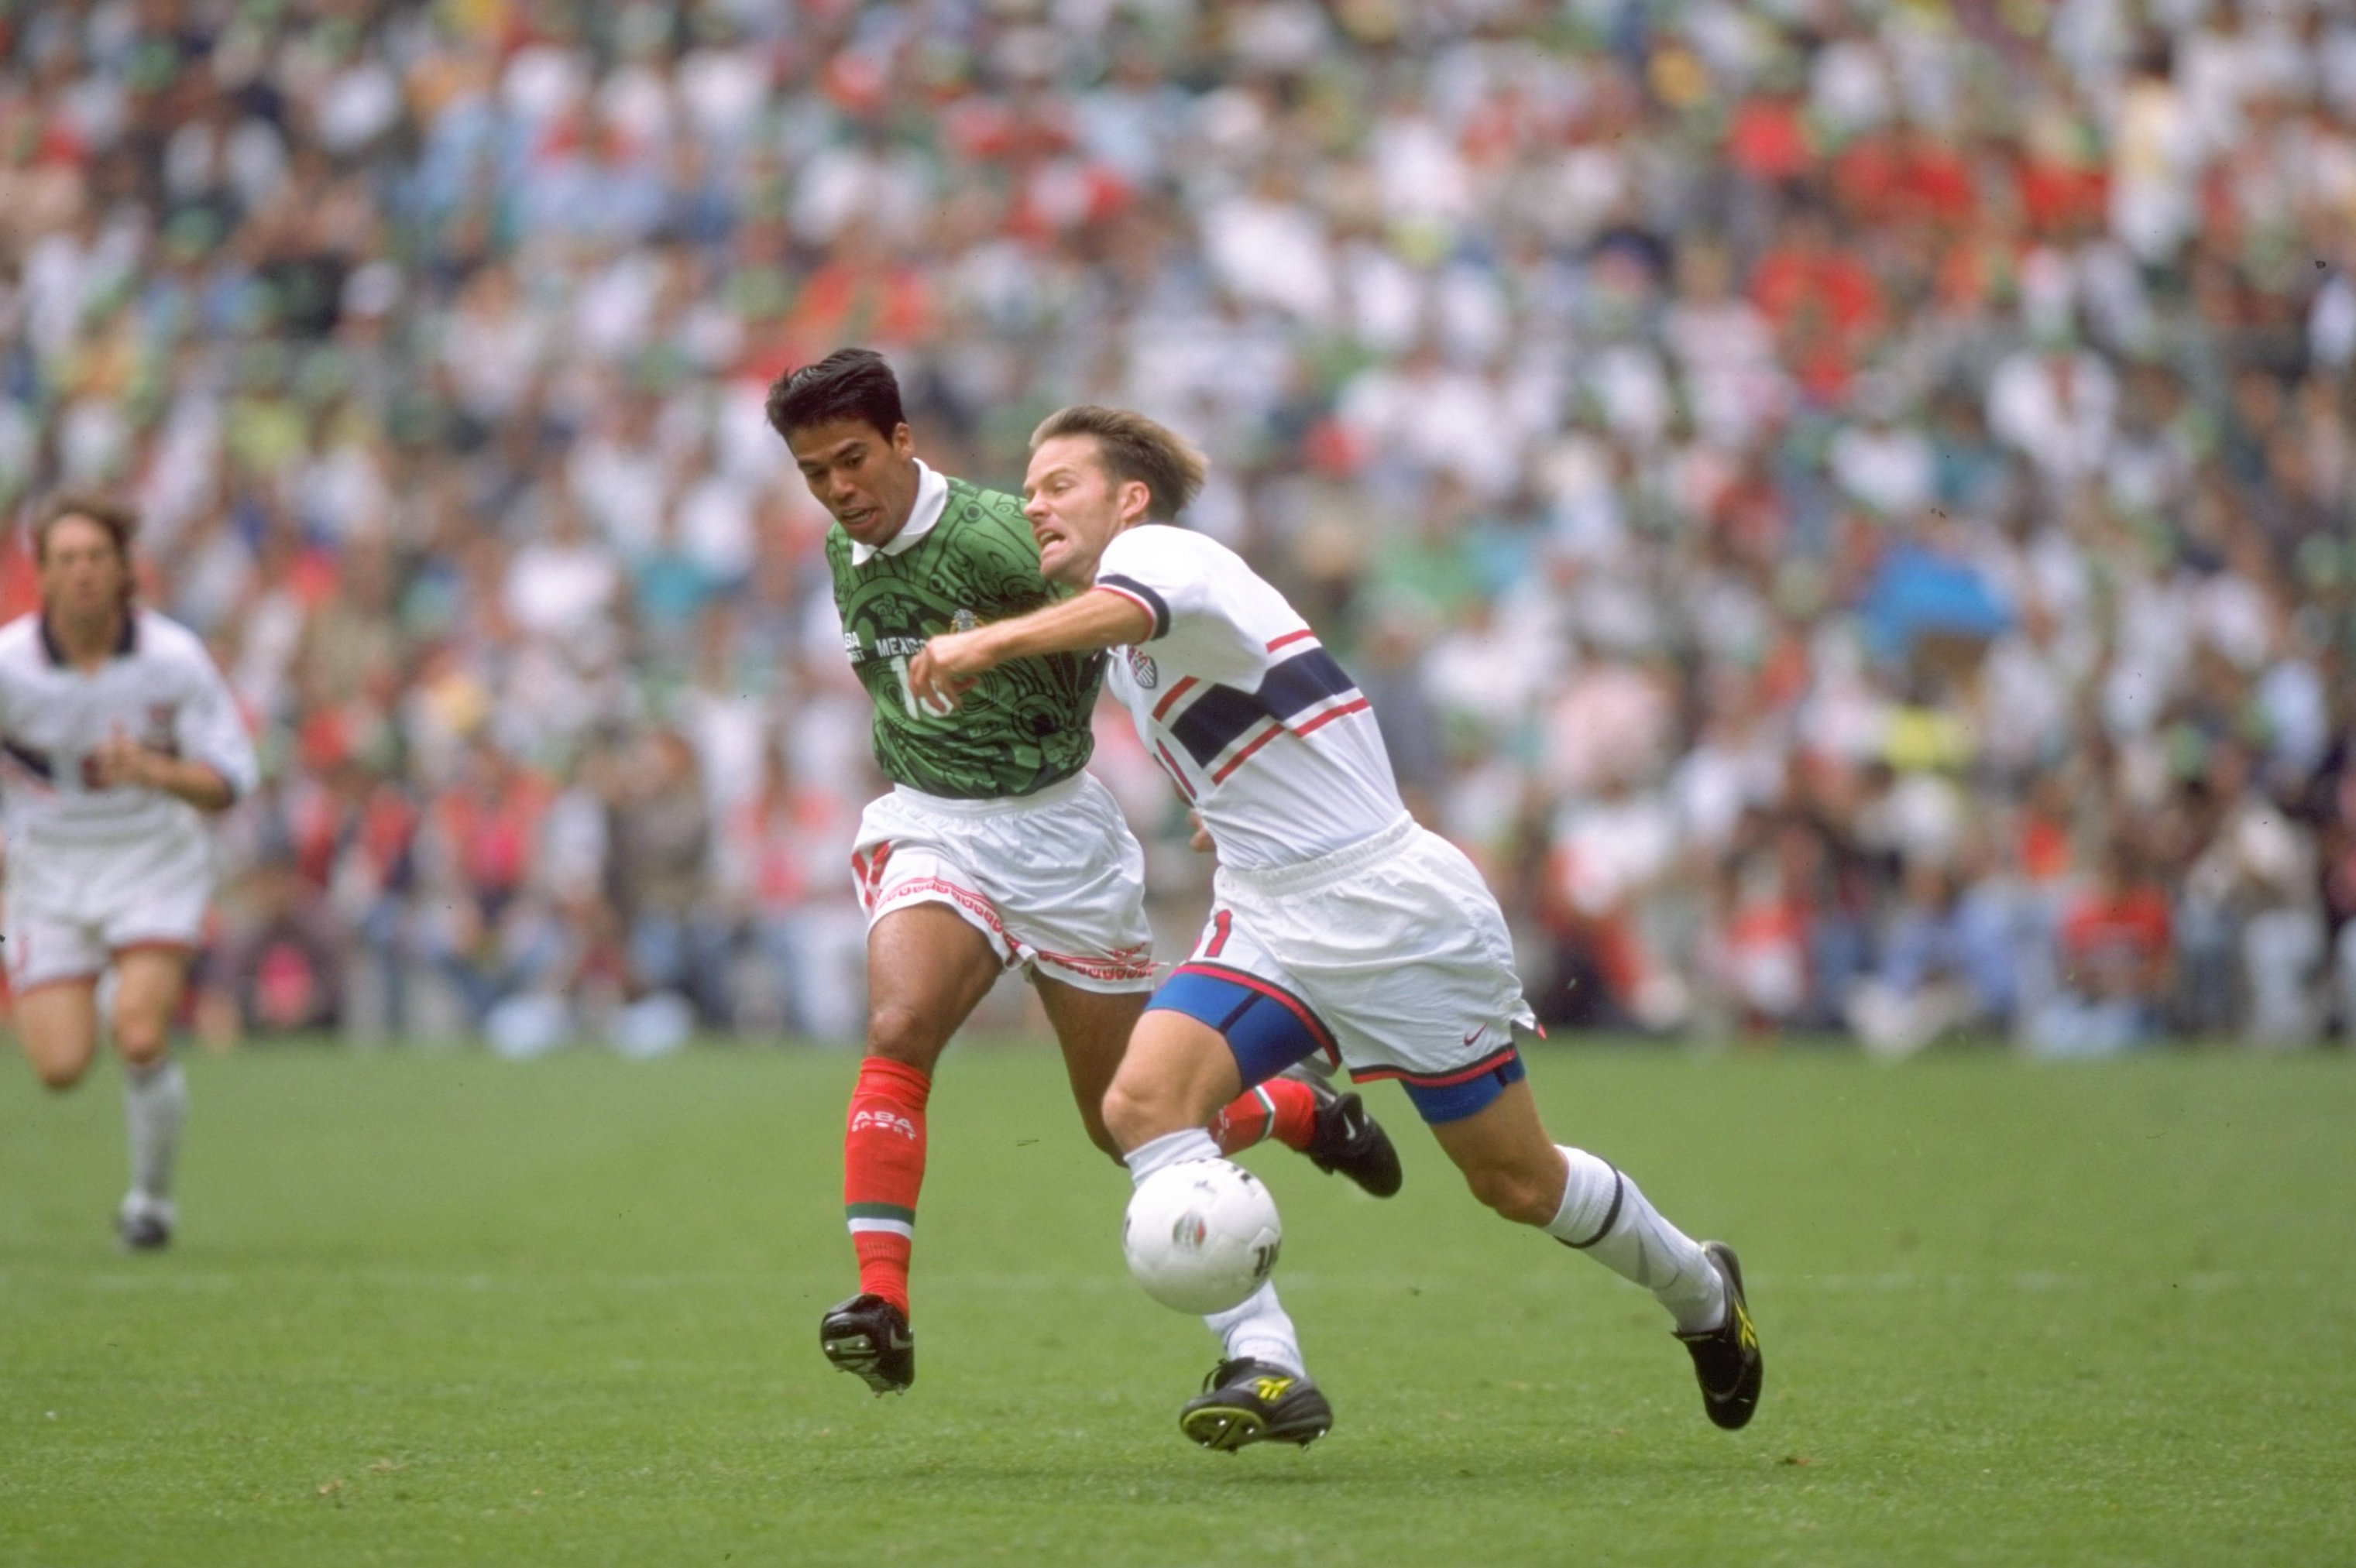 6 Legendary Goleadas and Dos a Ceros That Cemented the Mexico-US Soccer Rivalry